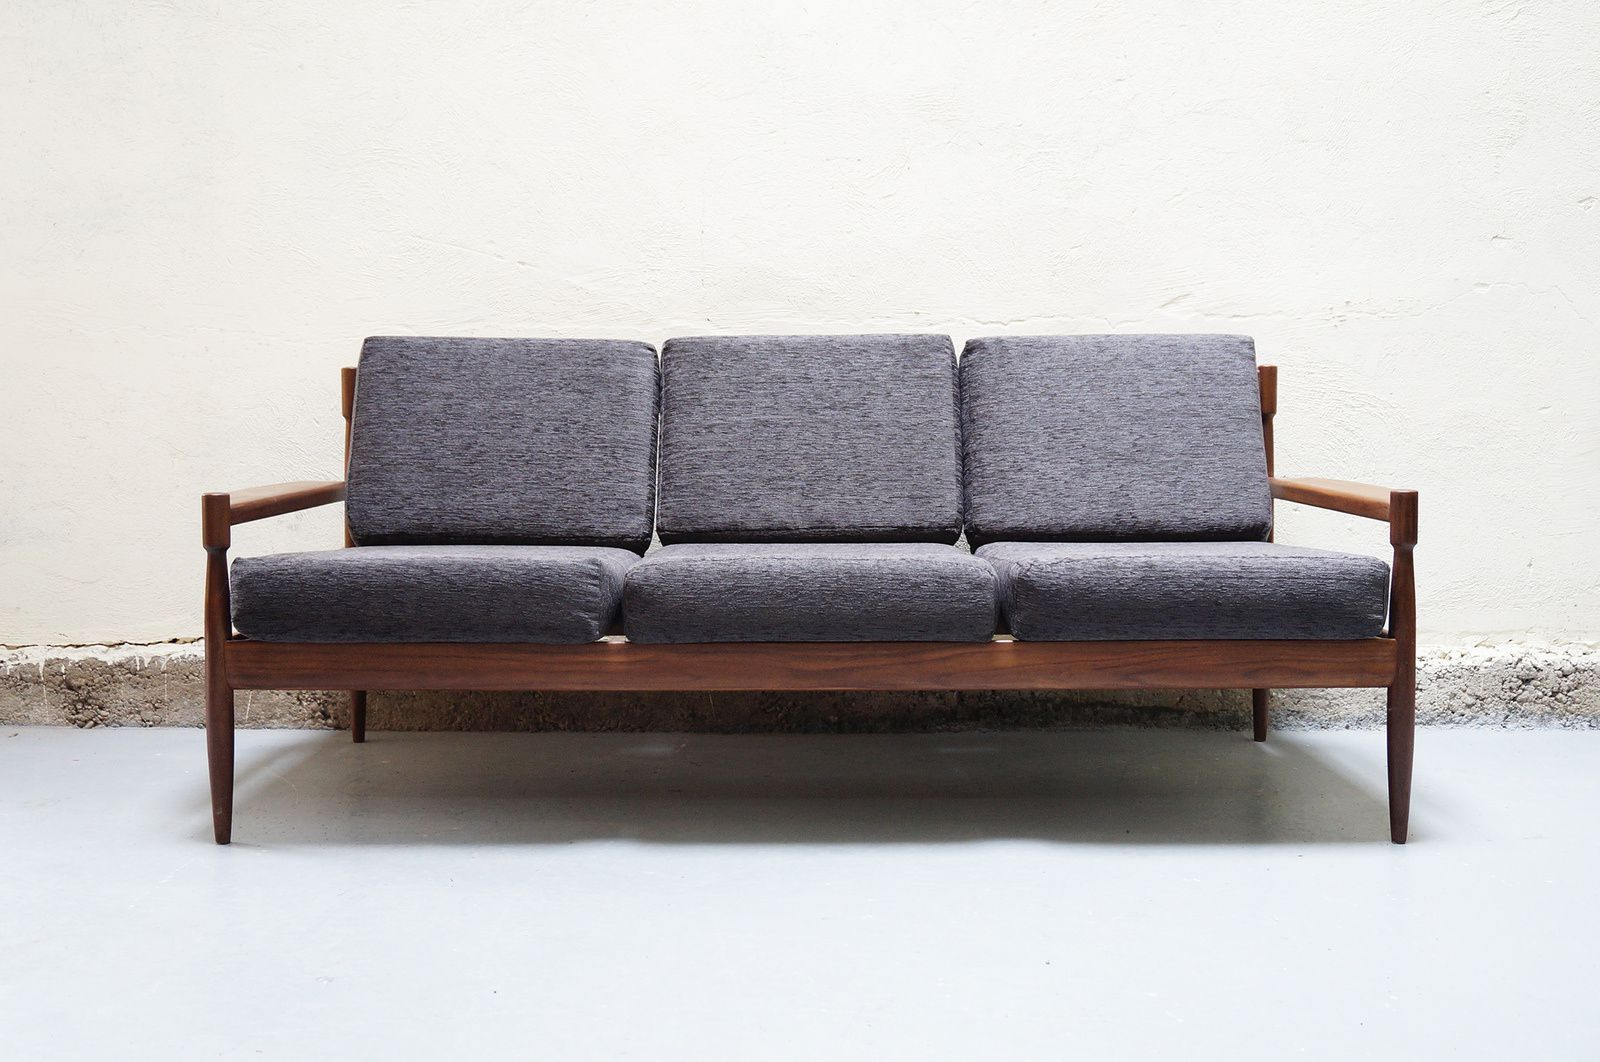 Banquette Scandinave Banquette Scandinave Tanke Galerie Designer Mad Men Decoration